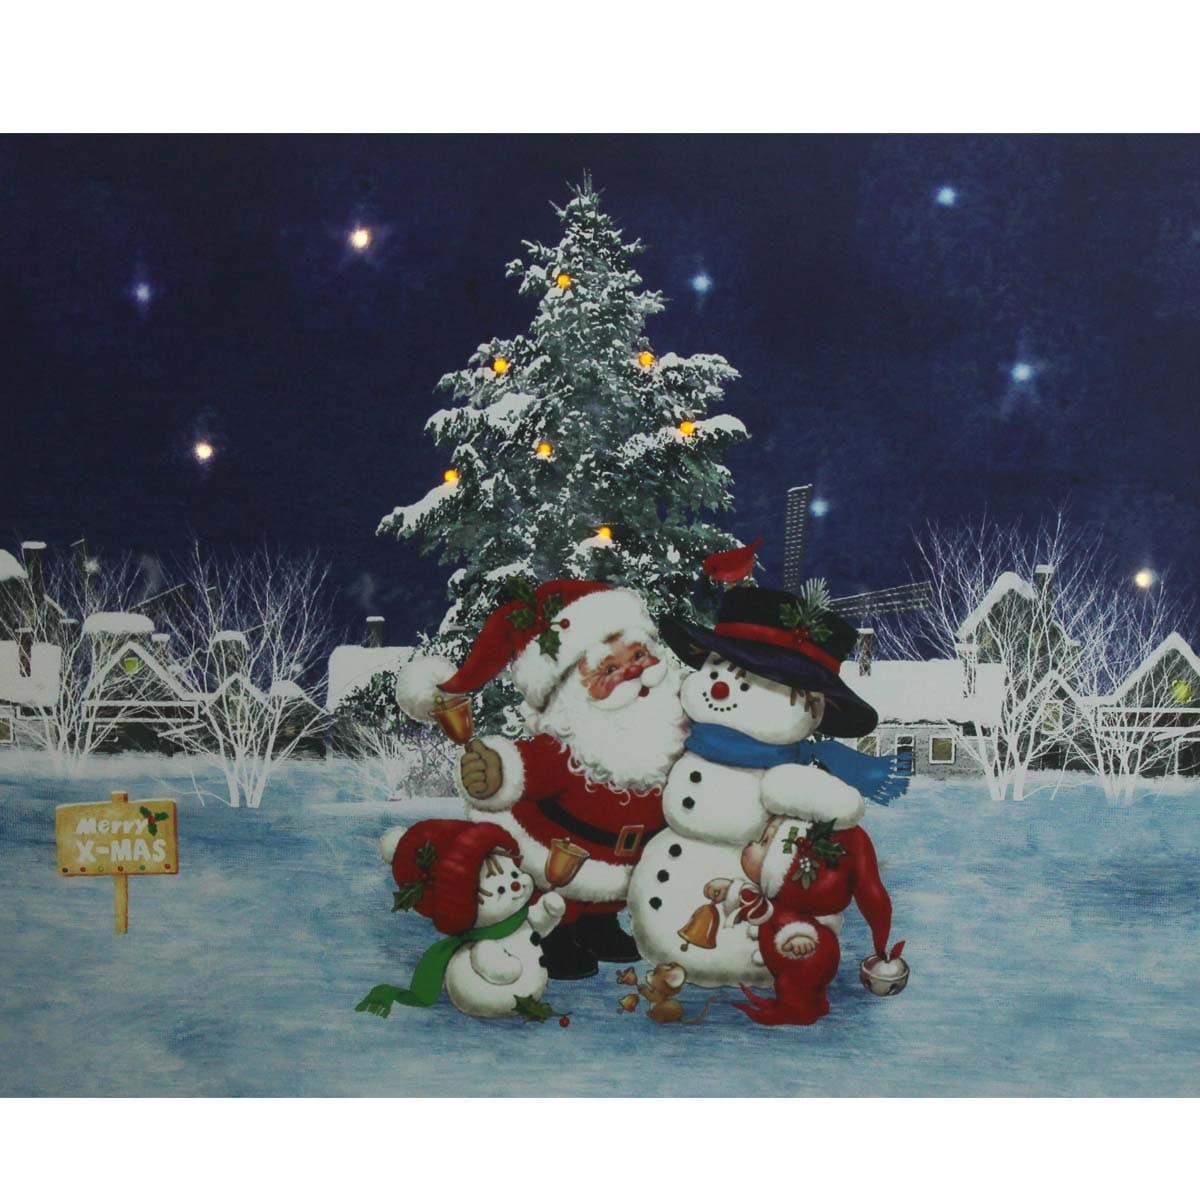 Snowman with Star Picture on Canvas with Led Lights Wall Art Christmas Decor